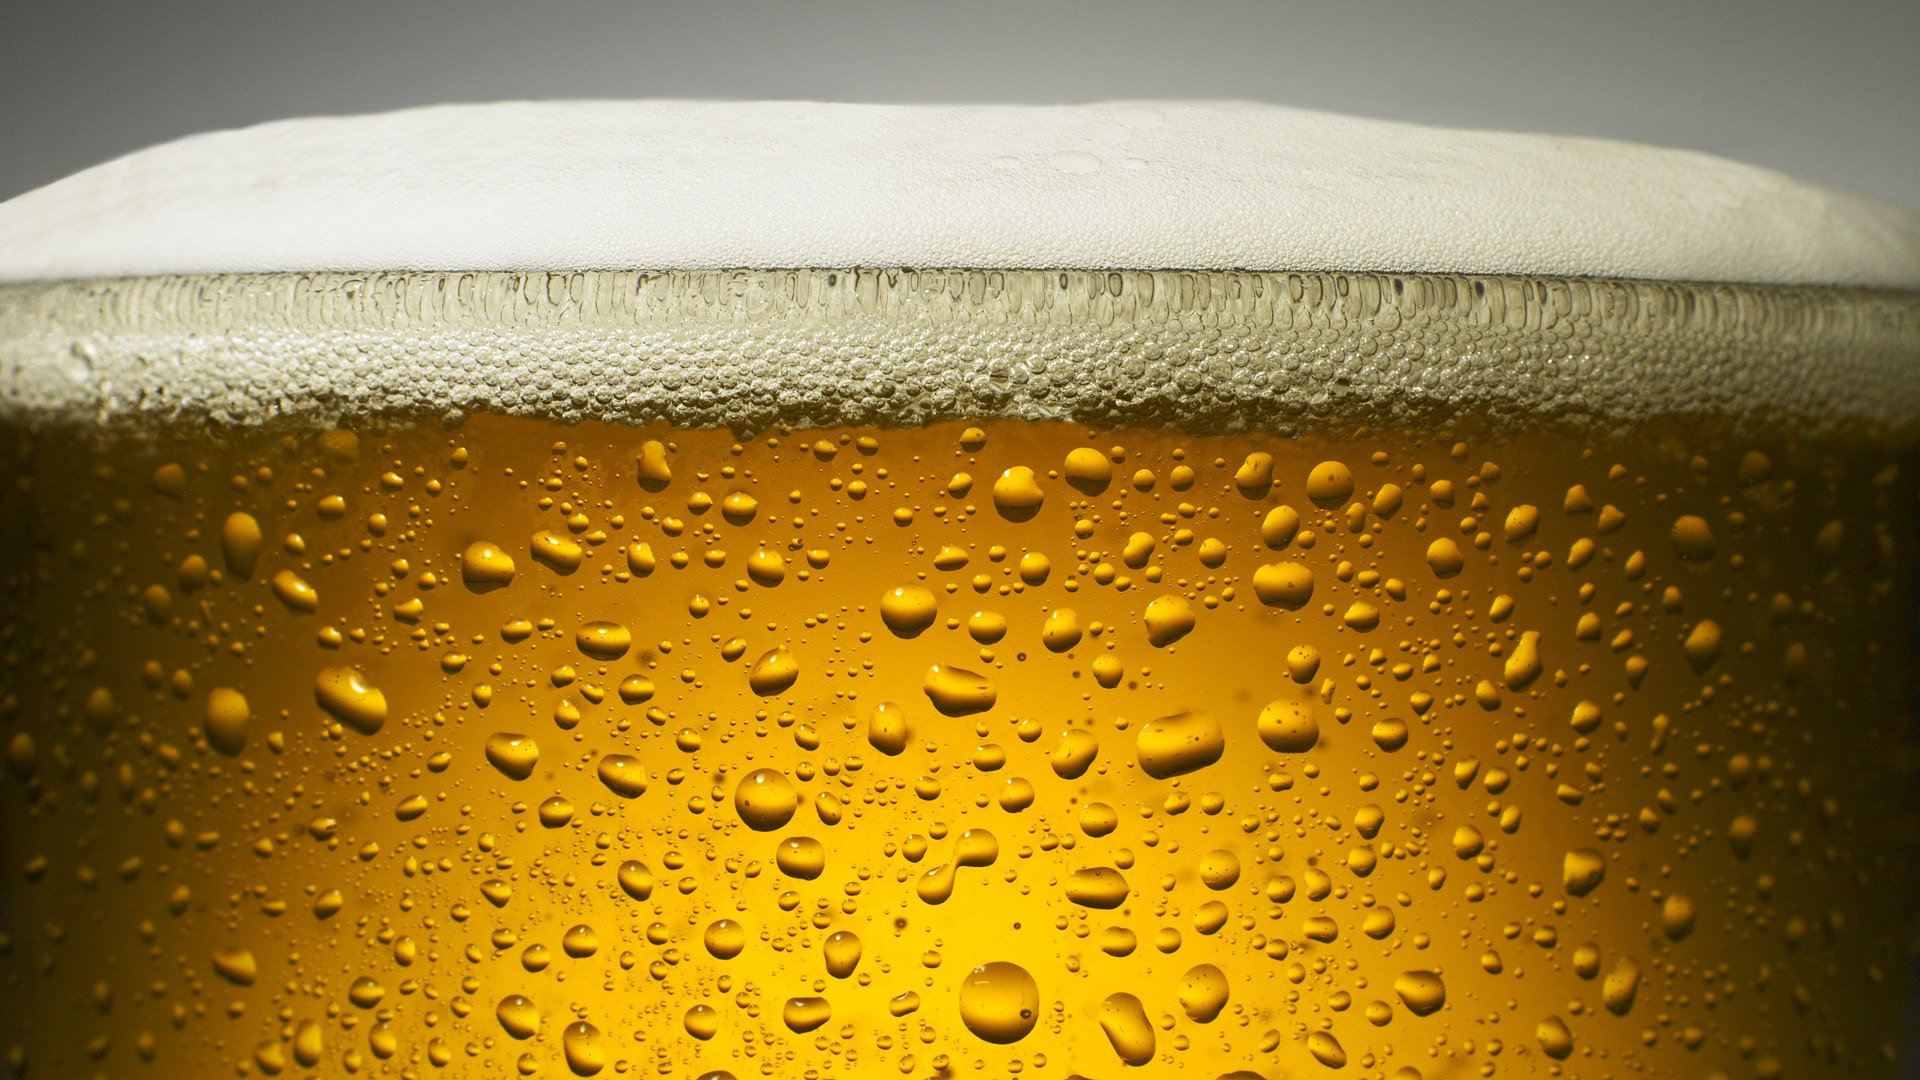 A refreshing glass of beer.